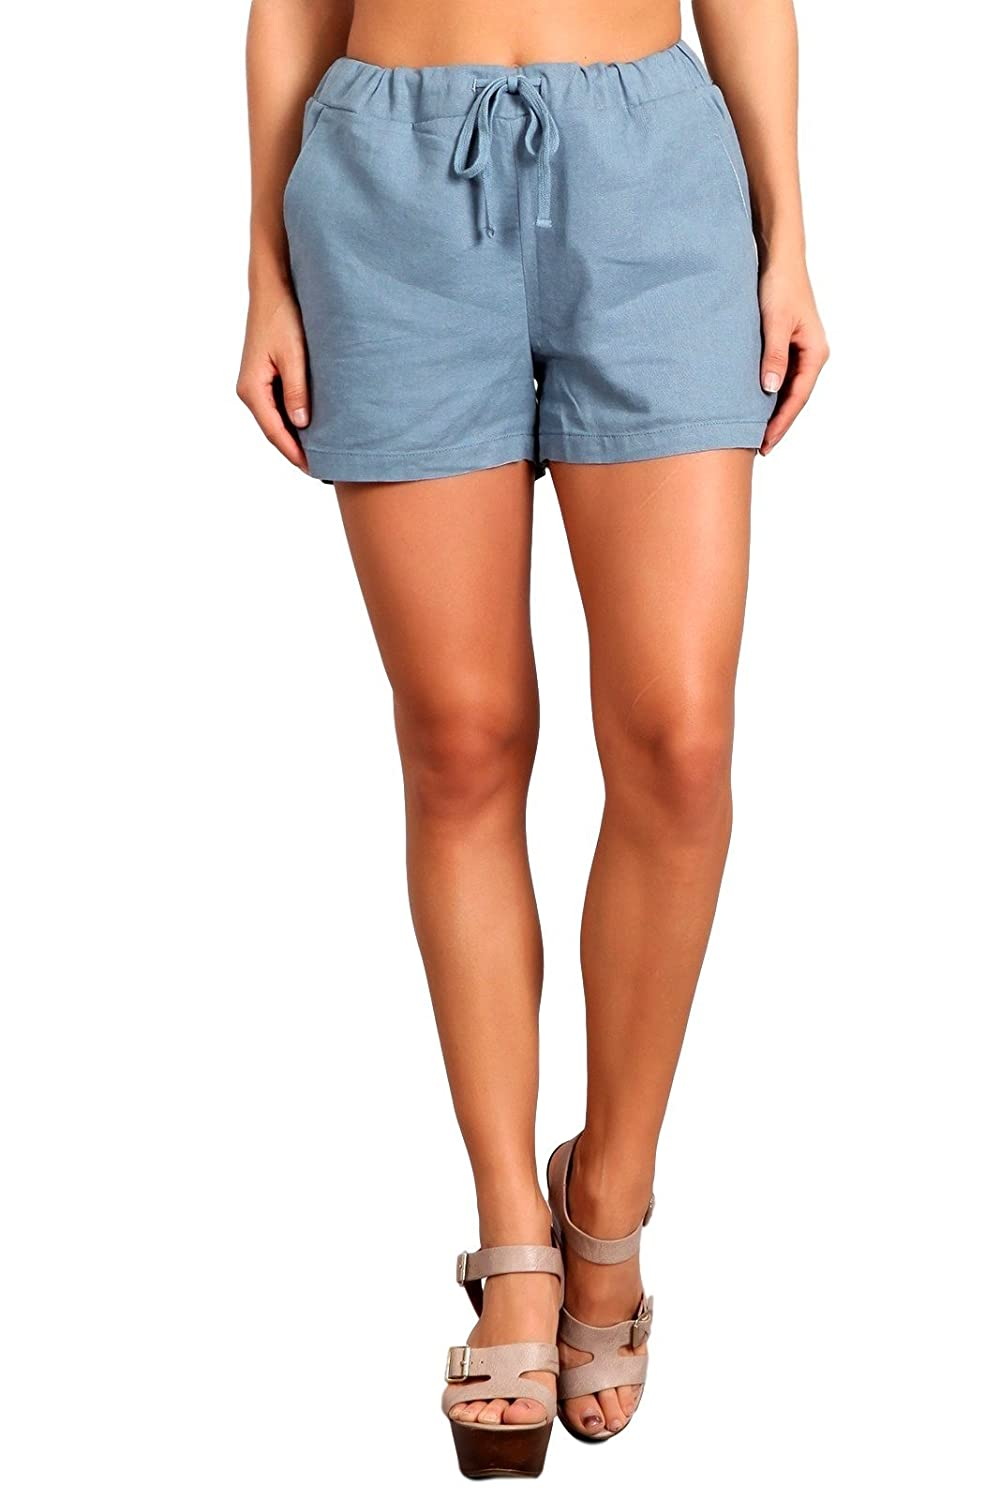 Celebrity Pink Women's High Rise Linen Shorts CJ31097GX